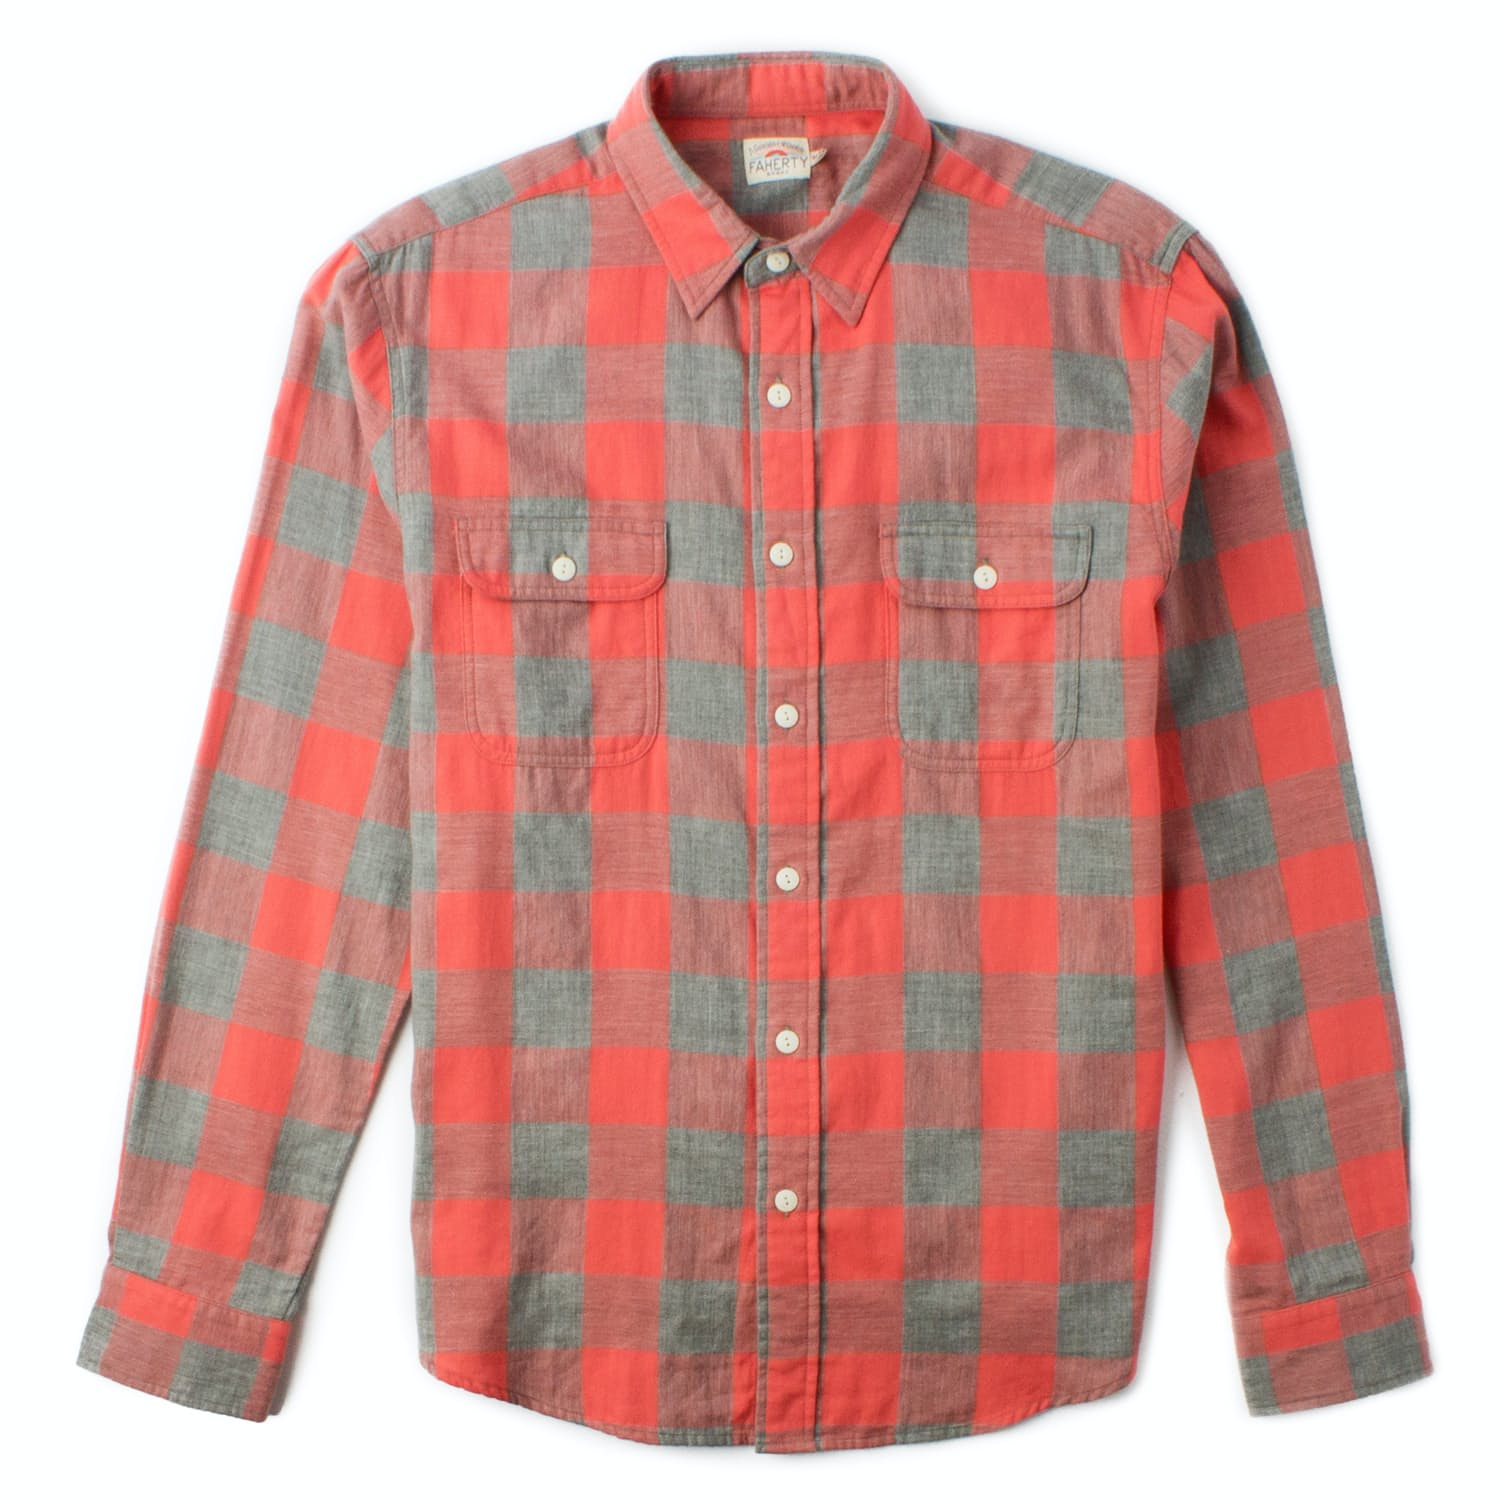 Moneuop3xg faherty brand reversible belmar shirt 0 original